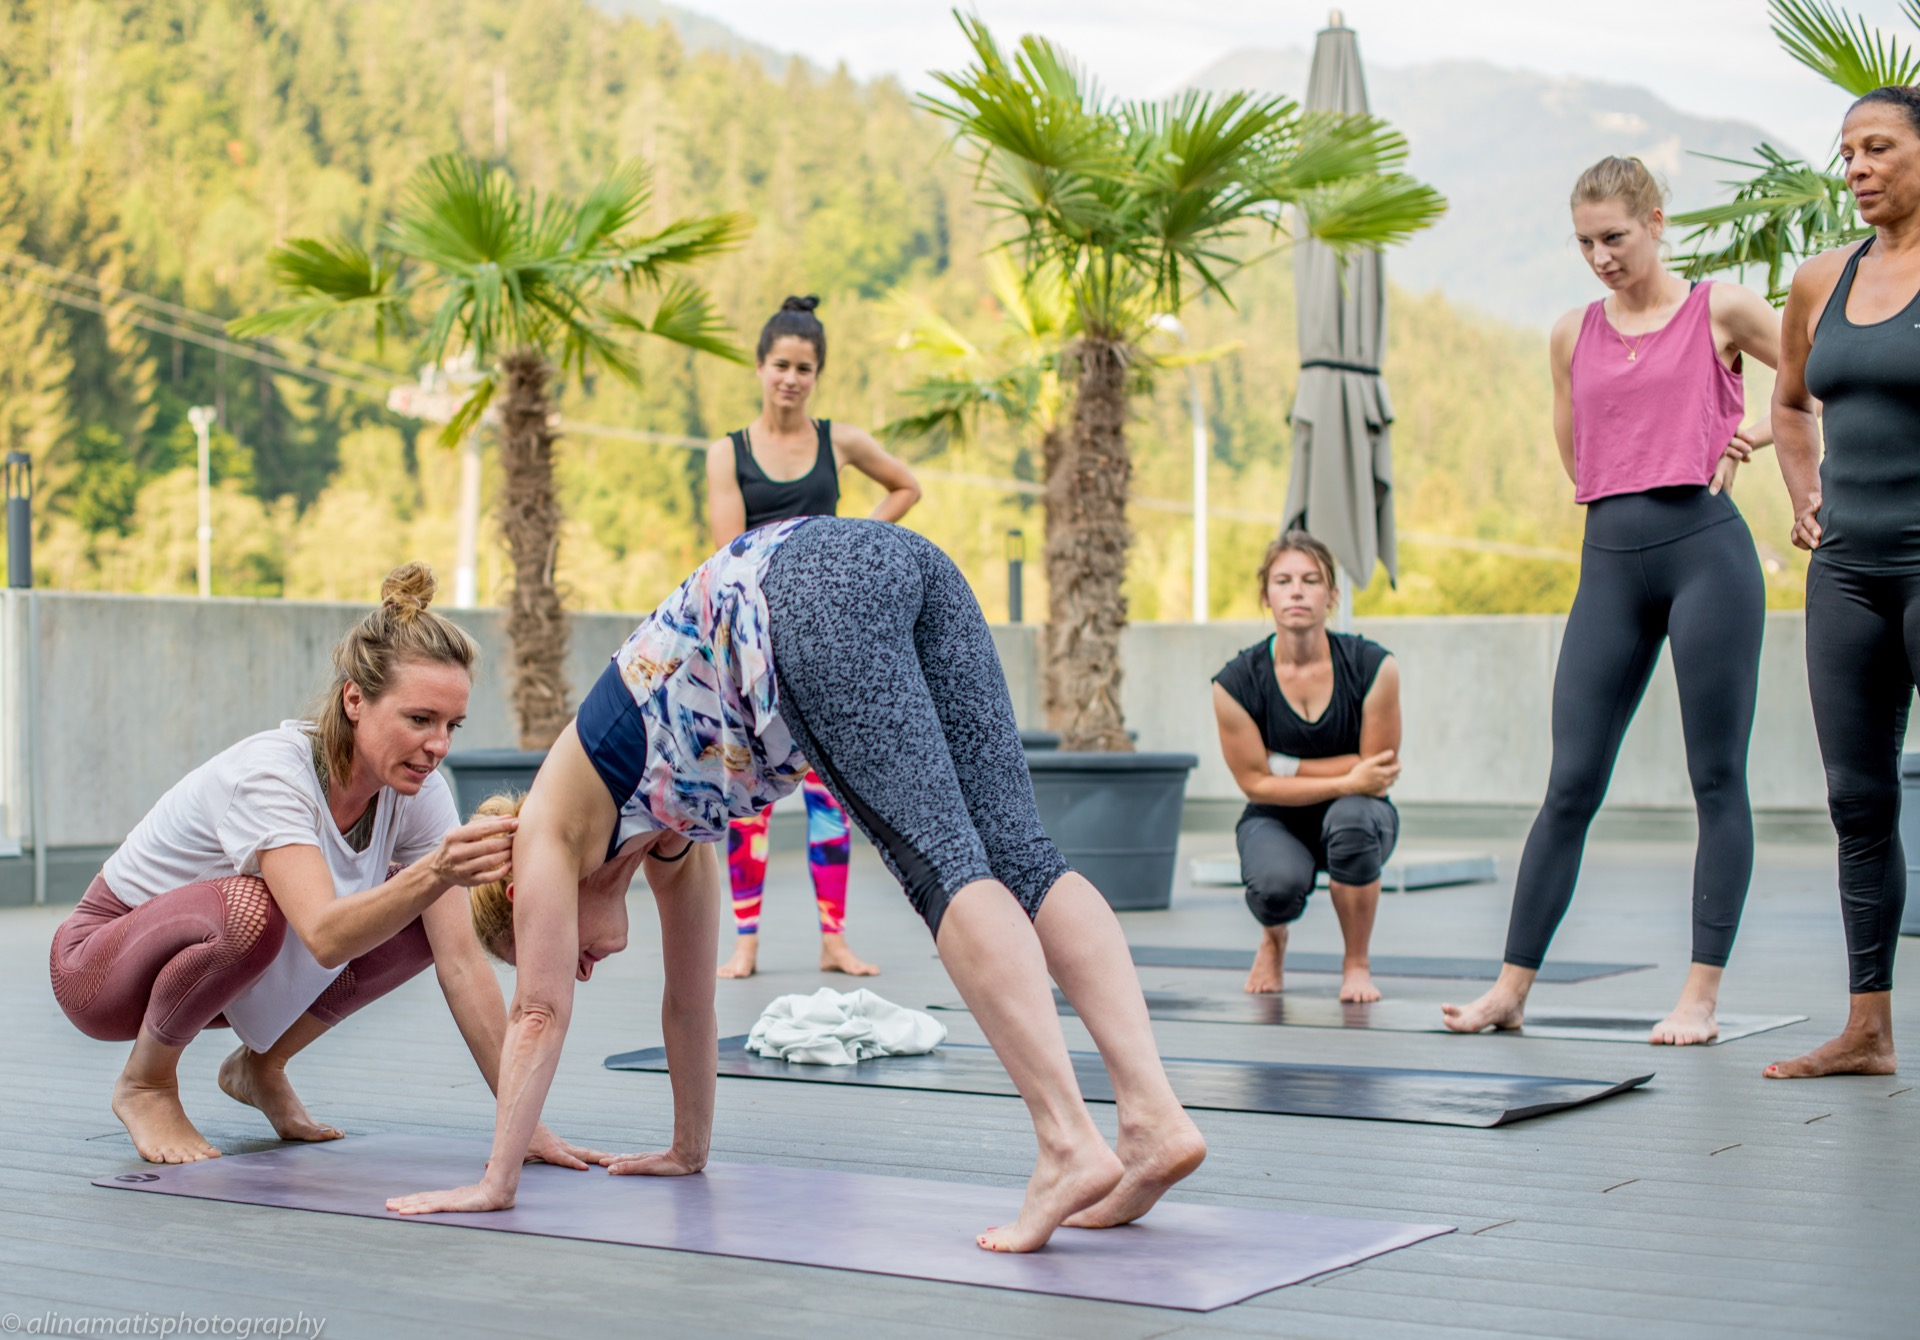 Hie-Kim-Friends-2018-Yoga-Retreat-Alina-Matis-Photography-073 - Hie Kim Yoga - Yoga Retreat - Yoga Workshops und Reisen